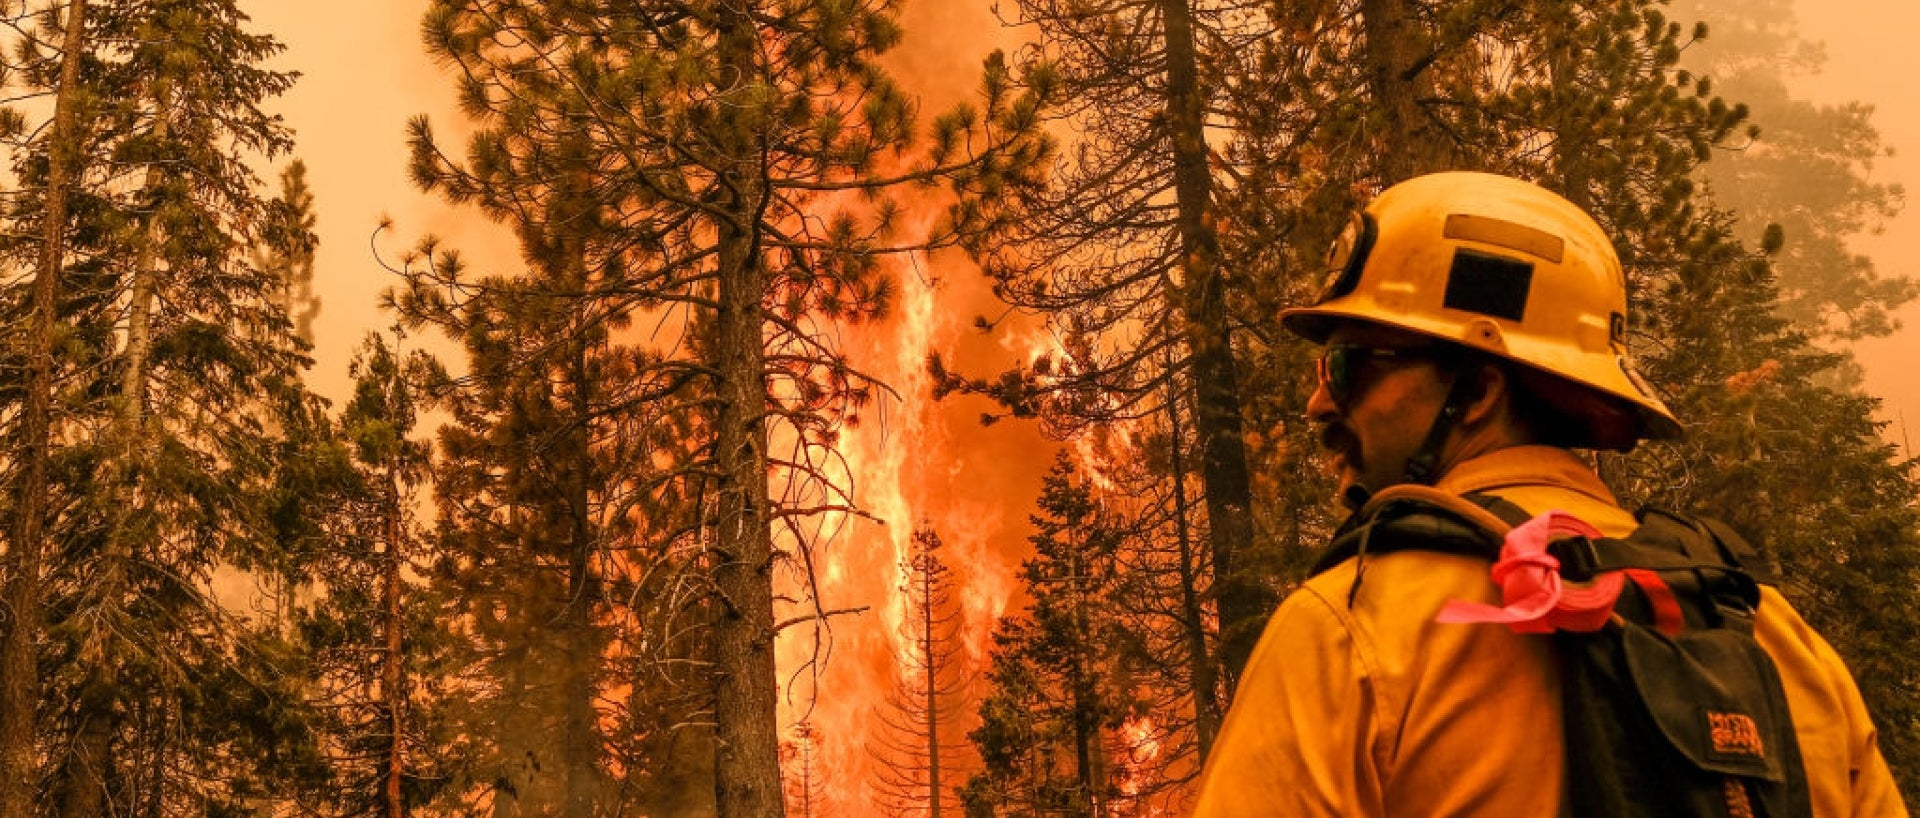 Firefighter standing in front of fire in Lake Tahoe